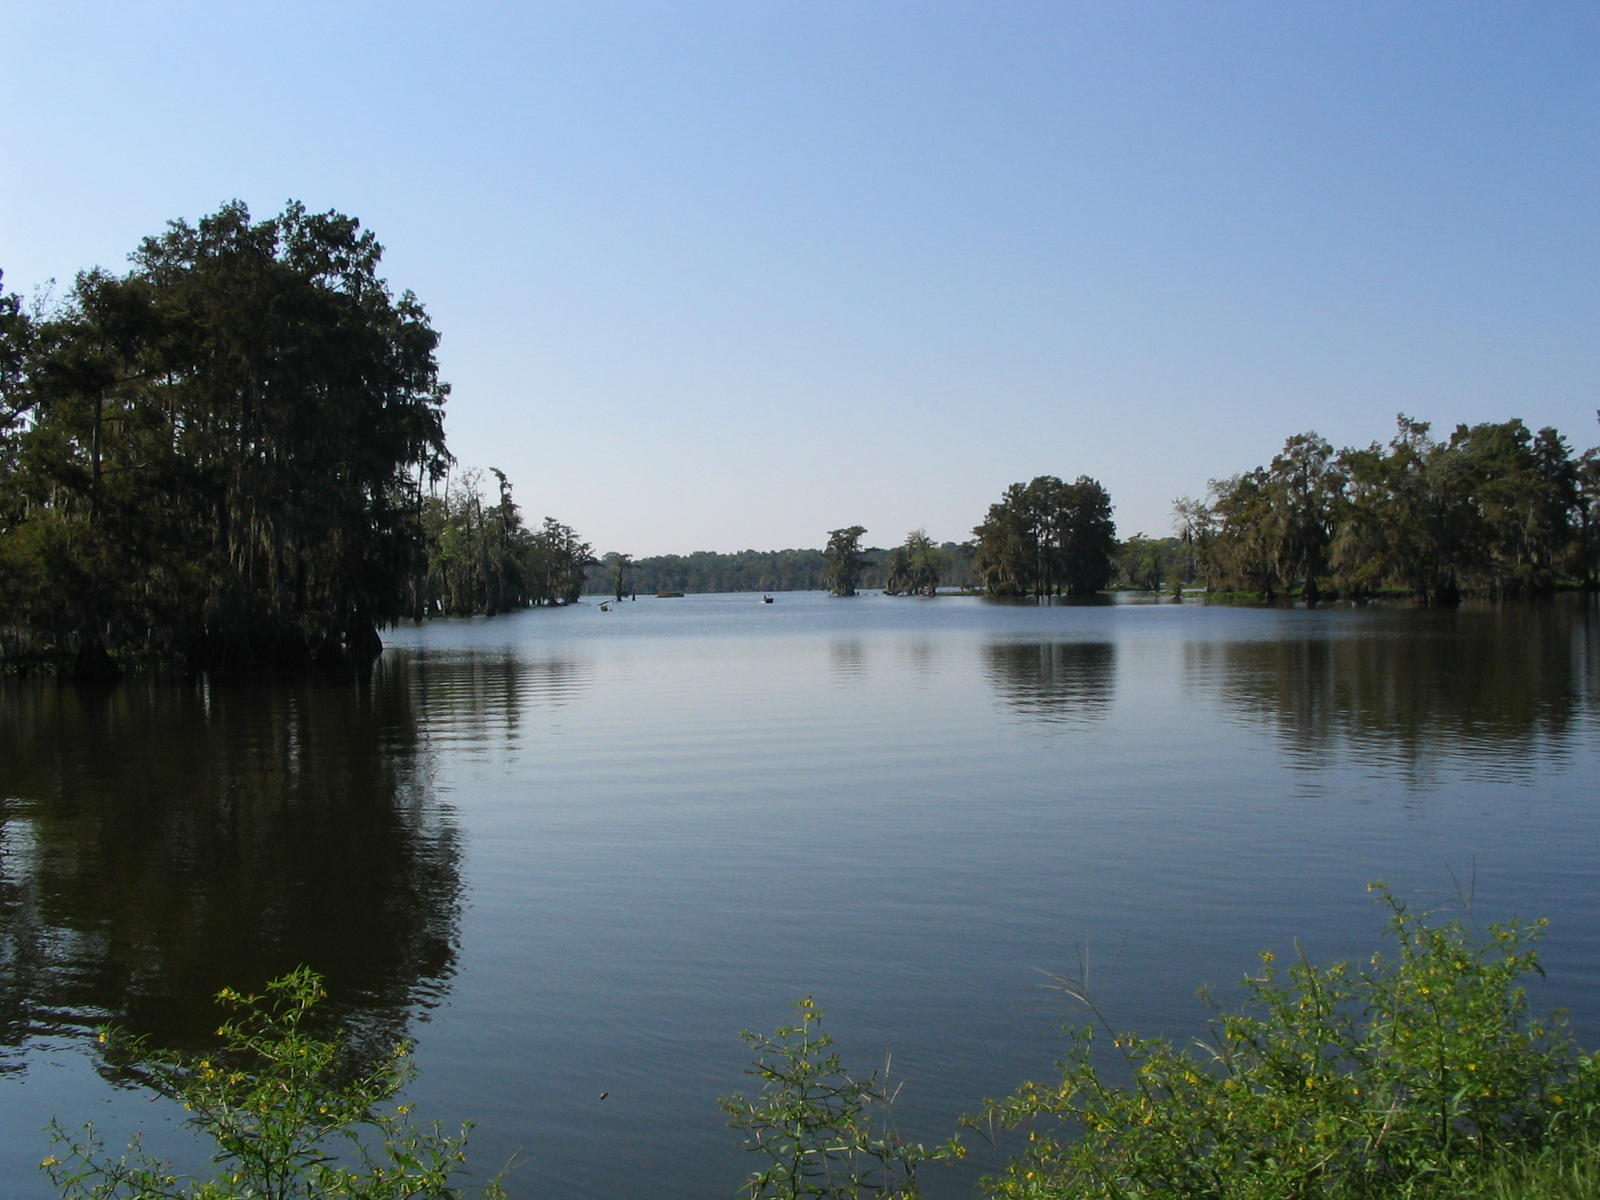 Pix of Louisiana New Orleans Lafayette Lake Charles to